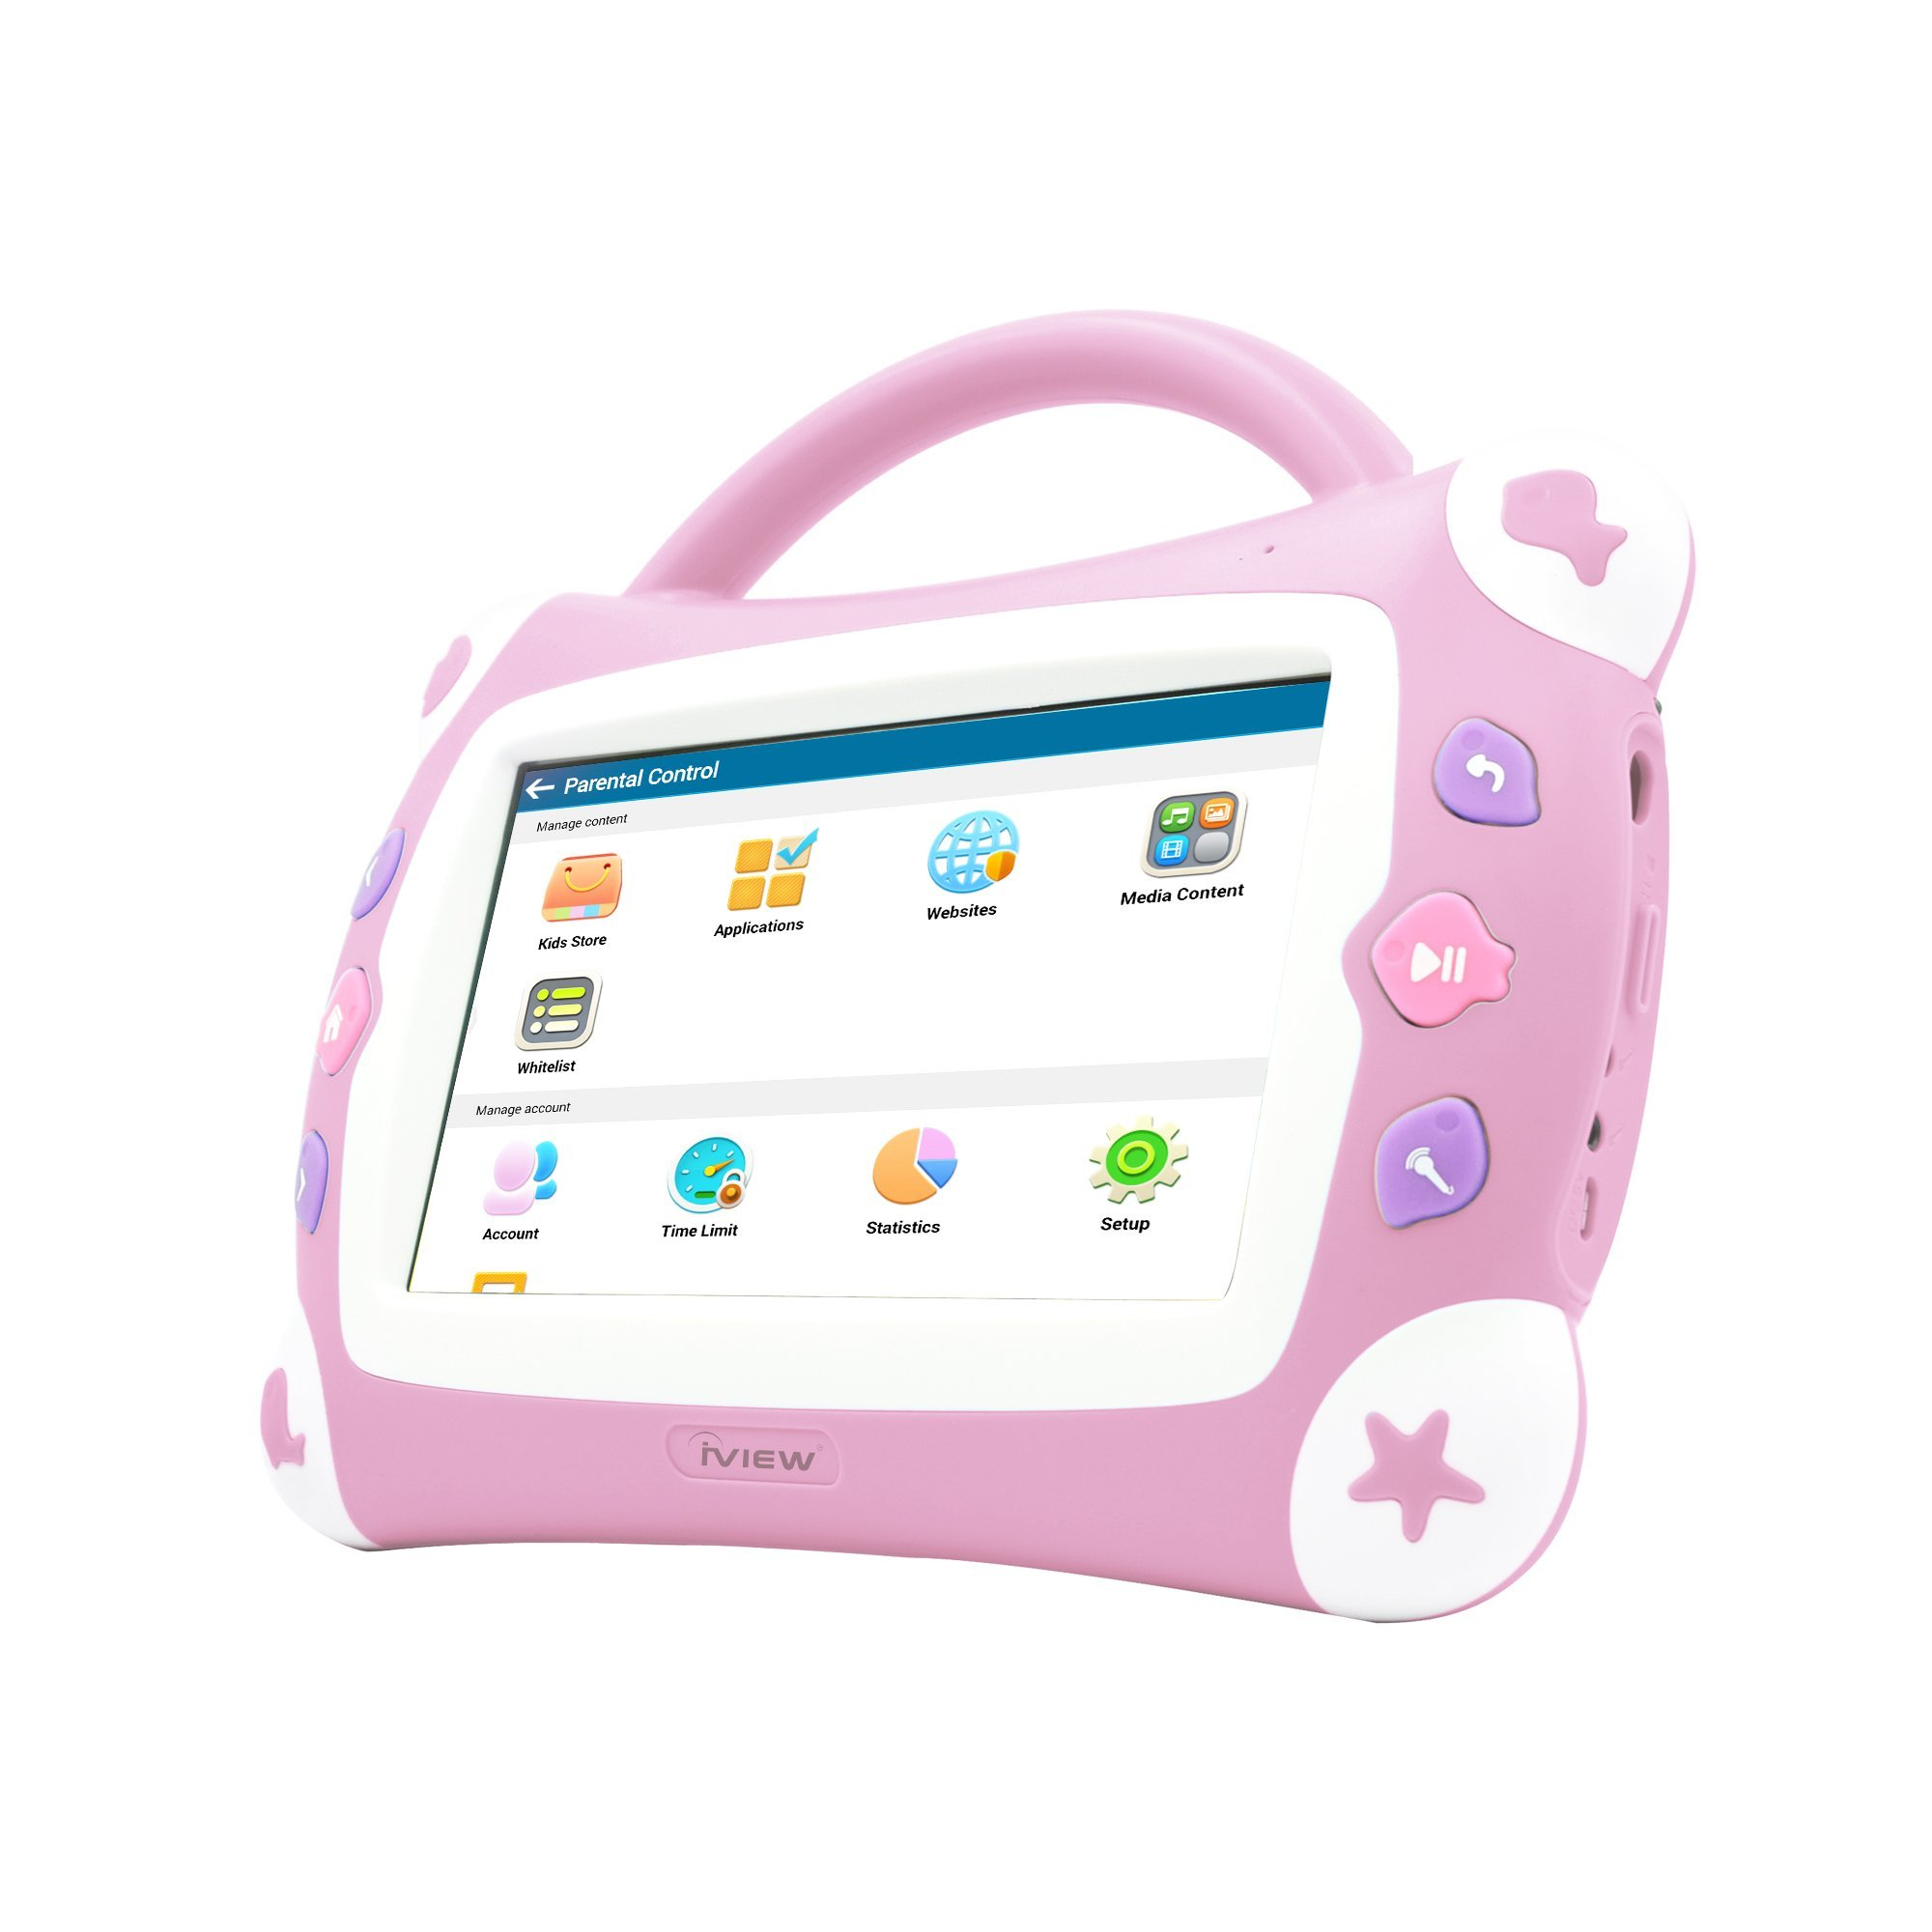 iView Sing Pad 711TPC, 7'' Kids Tablet with WiFi, Microphone, Preloaded Children's Games, Karaoke, Parental Control, Tablet Case with Built-in Stand by IVIEW (Image #2)